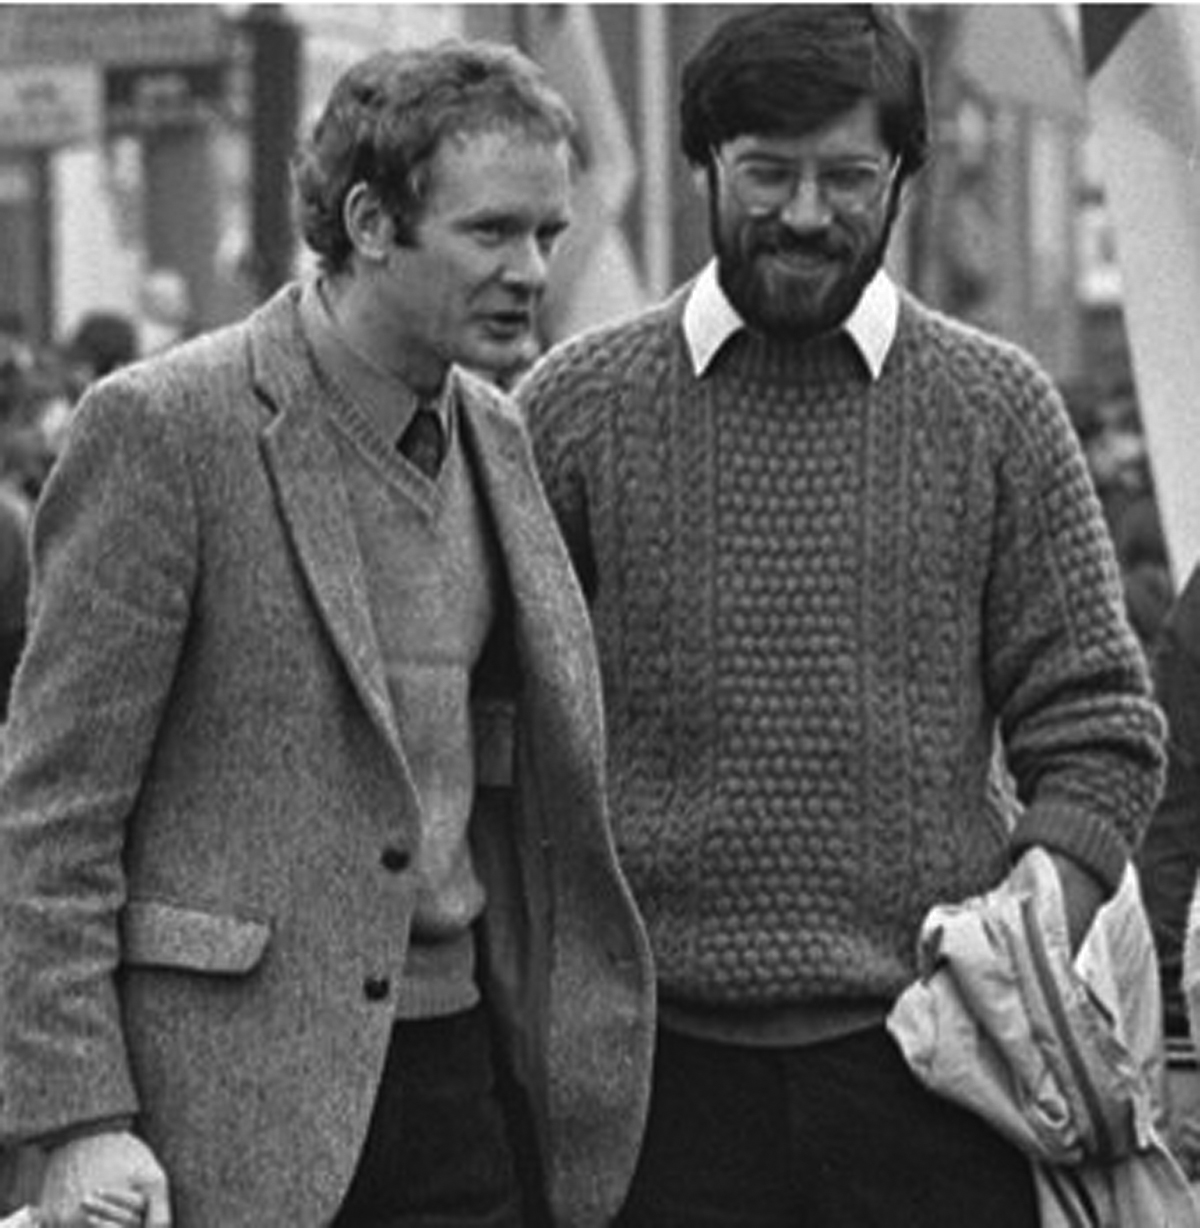 AS YOU WERE: In their younger days, Martin McGuinness and Gerry Adams